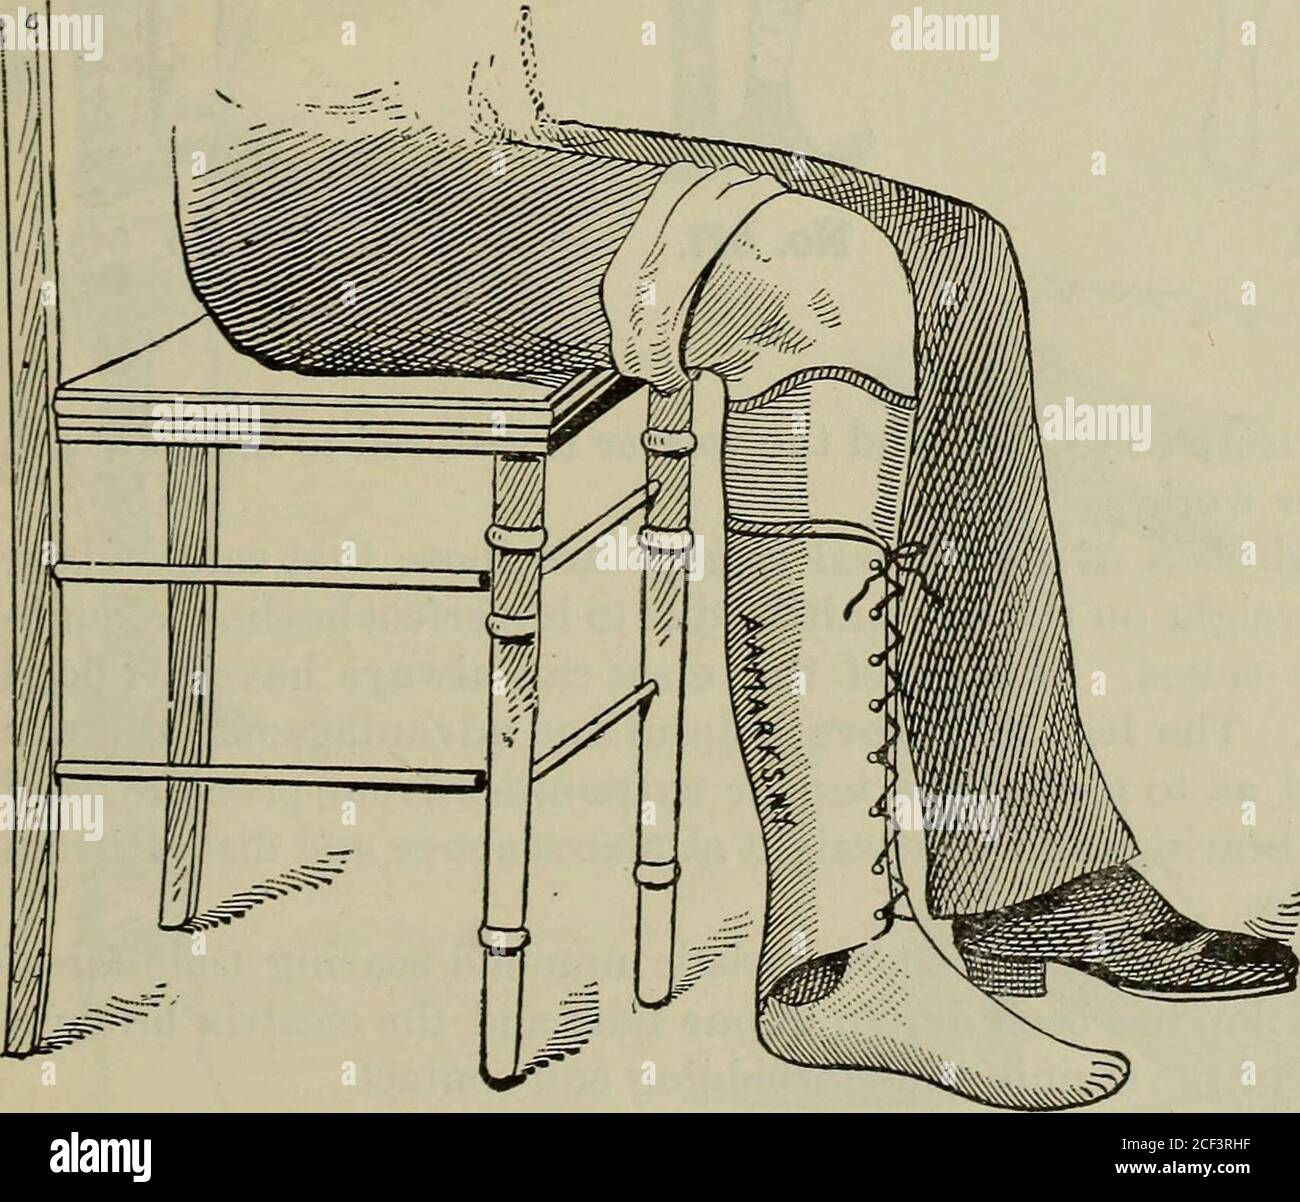 . A treatise on artificial limbs with rubber hands and feet ... No. 644. sequently the No. 641 leg can be made much lighter and possess thesame strength.A stump that is incapable of bearing the entire pressure on its. No. 645. extremity can be provided with a leg, the upper portion of which ismade annular, as represented in Cut No. 644. The annular top willsupport the weight immediately below the knee. The pads for the .:. --L-: :: : - iZ :,: «rS7 : :?:- ::i ::-t-7 : i--::-,. .t-Jt^ ;•; 7.5 ,: :. * .: :  .^  ± - : . : r: t.t :> 7 :•::•: ji. :   :: t7I : . - - ? . -   . r - t   ? - Stock Photo